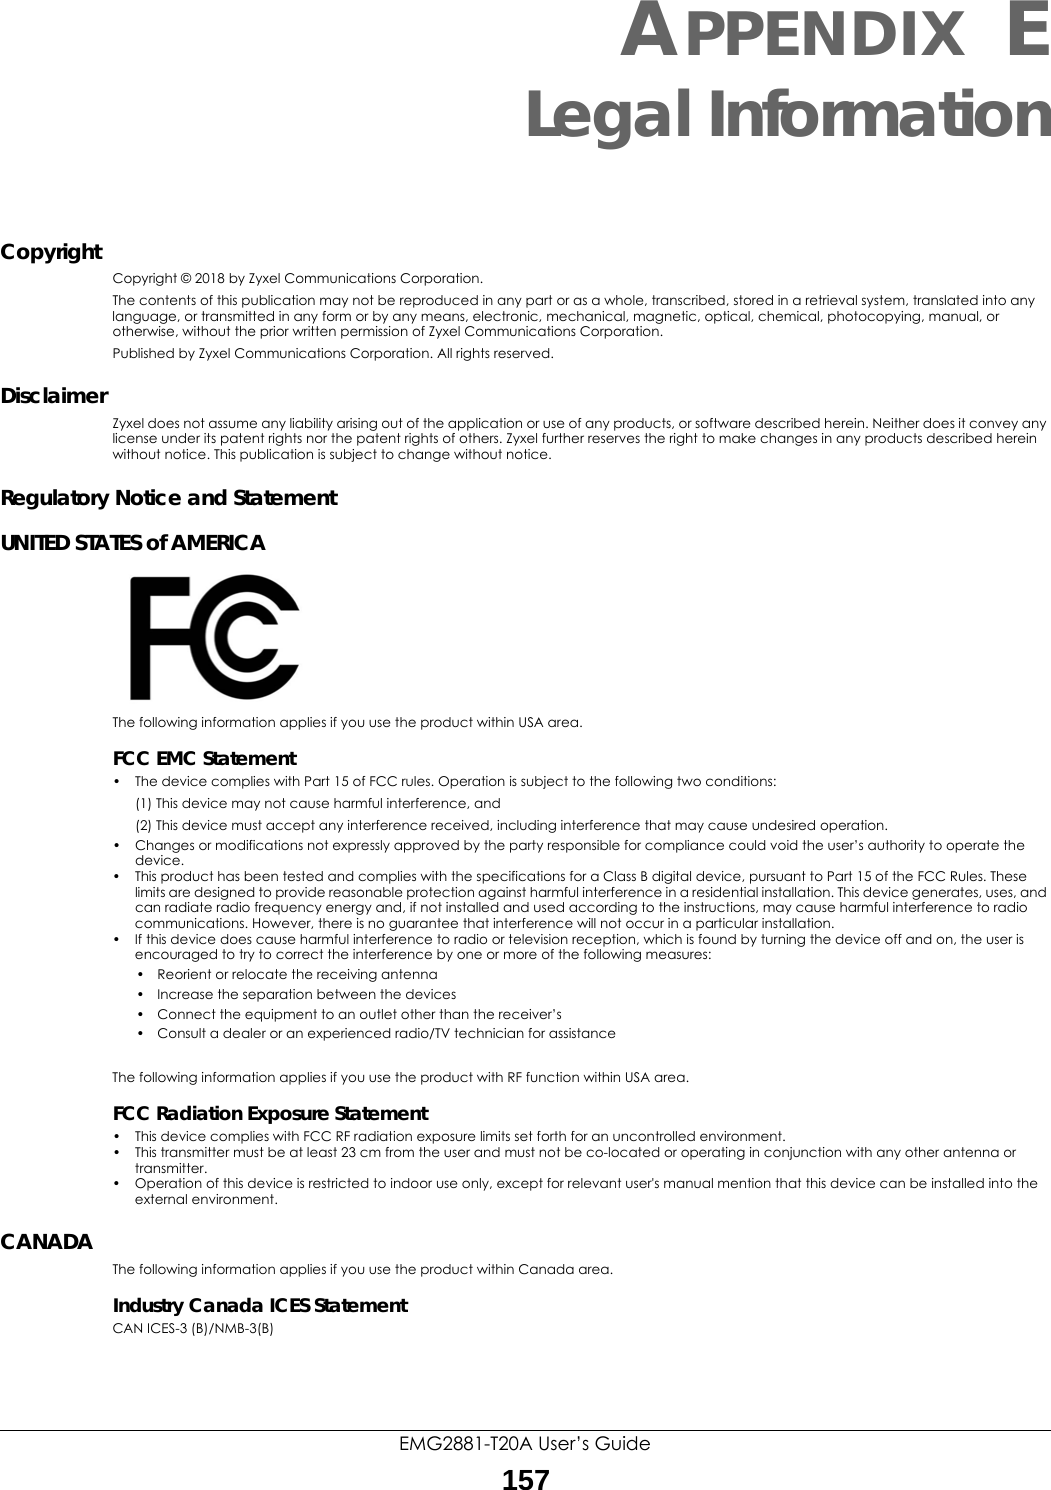 EMG2881-T20A User's Guide157APPENDIX ELegal InformationCopyrightCopyright © 2018 by Zyxel Communications Corporation.The contents of this publication may not be reproduced in any part or as a whole, transcribed, stored in a retrieval system, translated into any language, or transmitted in any form or by any means, electronic, mechanical, magnetic, optical, chemical, photocopying, manual, or otherwise, without the prior written permission of Zyxel Communications Corporation.Published by Zyxel Communications Corporation. All rights reserved.DisclaimerZyxel does not assume any liability arising out of the application or use of any products, or software described herein. Neither does it convey any license under its patent rights nor the patent rights of others. Zyxel further reserves the right to make changes in any products described herein without notice. This publication is subject to change without notice.Regulatory Notice and StatementUNITED STATES of AMERICAThe following information applies if you use the product within USA area.FCC EMC Statement• The device complies with Part 15 of FCC rules. Operation is subject to the following two conditions:(1) This device may not cause harmful interference, and (2) This device must accept any interference received, including interference that may cause undesired operation.• Changes or modifications not expressly approved by the party responsible for compliance could void the user's authority to operate the device.• This product has been tested and complies with the specifications for a Class B digital device, pursuant to Part 15 of the FCC Rules. These limits are designed to provide reasonable protection against harmful interference in a residential installation. This device generates, uses, and can radiate radio frequency energy and, if not installed and used according to the instructions, may cause harmful interference to radio communications. However, there is no guarantee that interference will not occur in a particular 